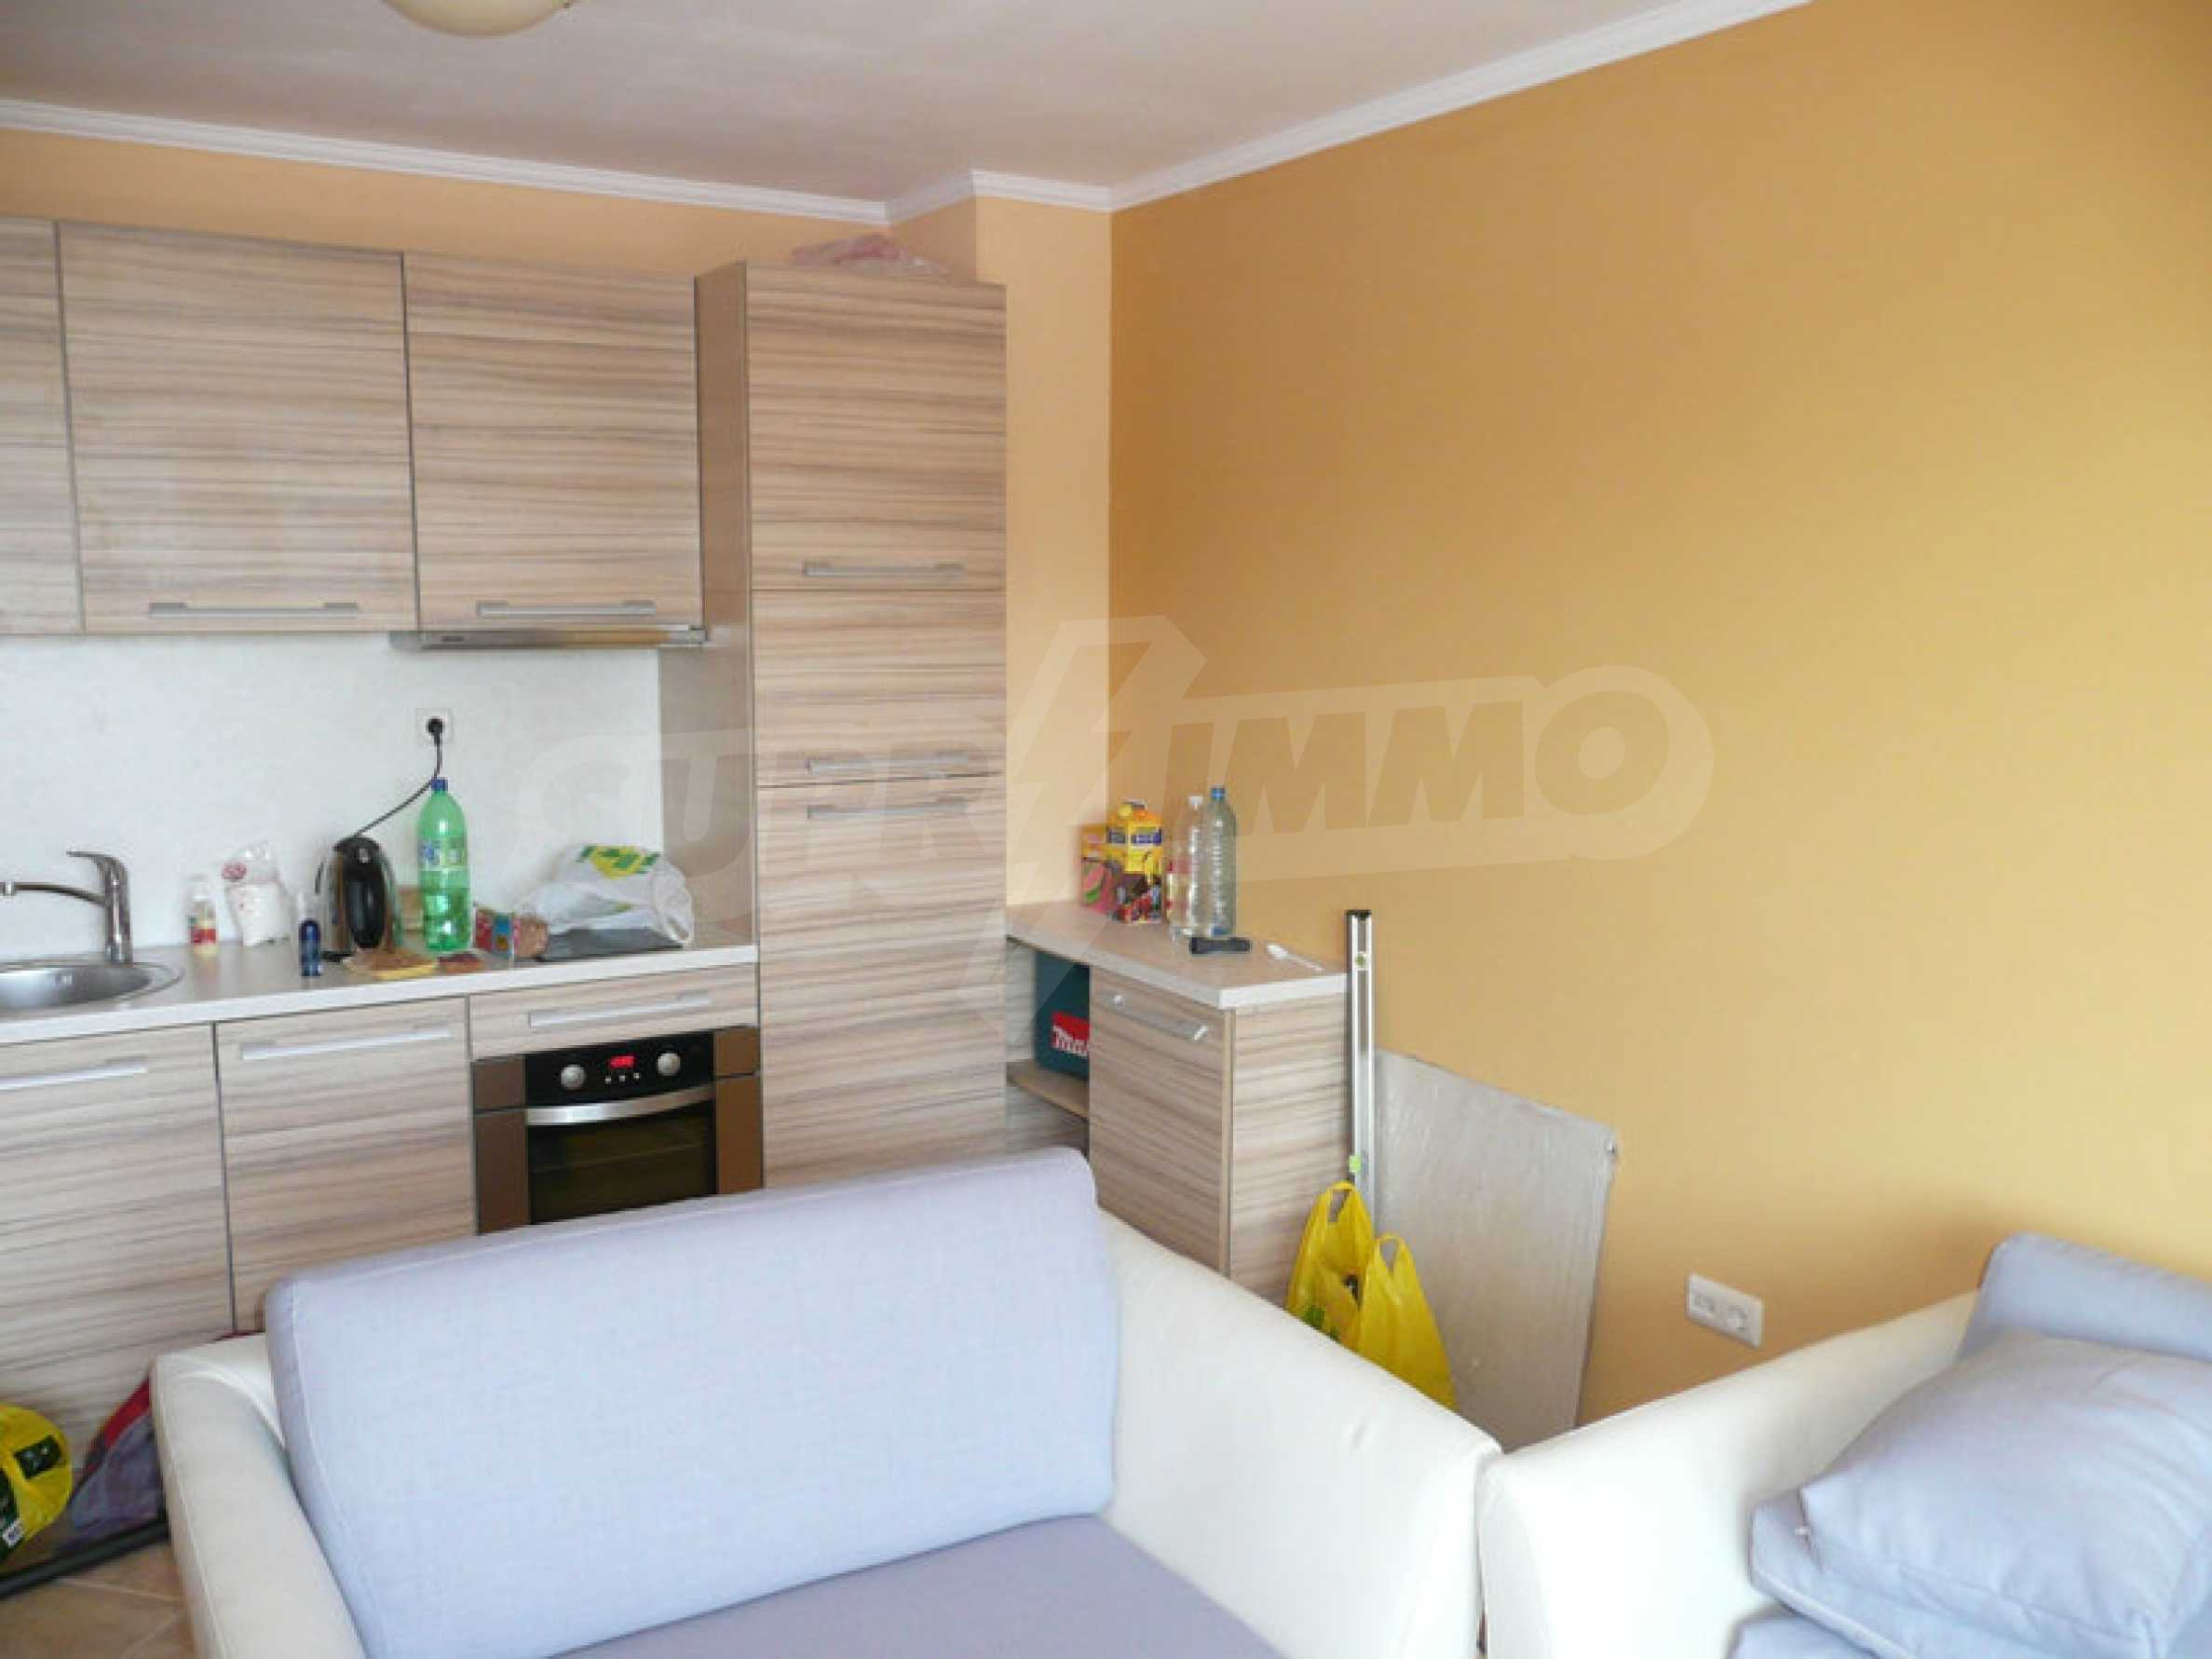 One bedroom apartment in Byala 1